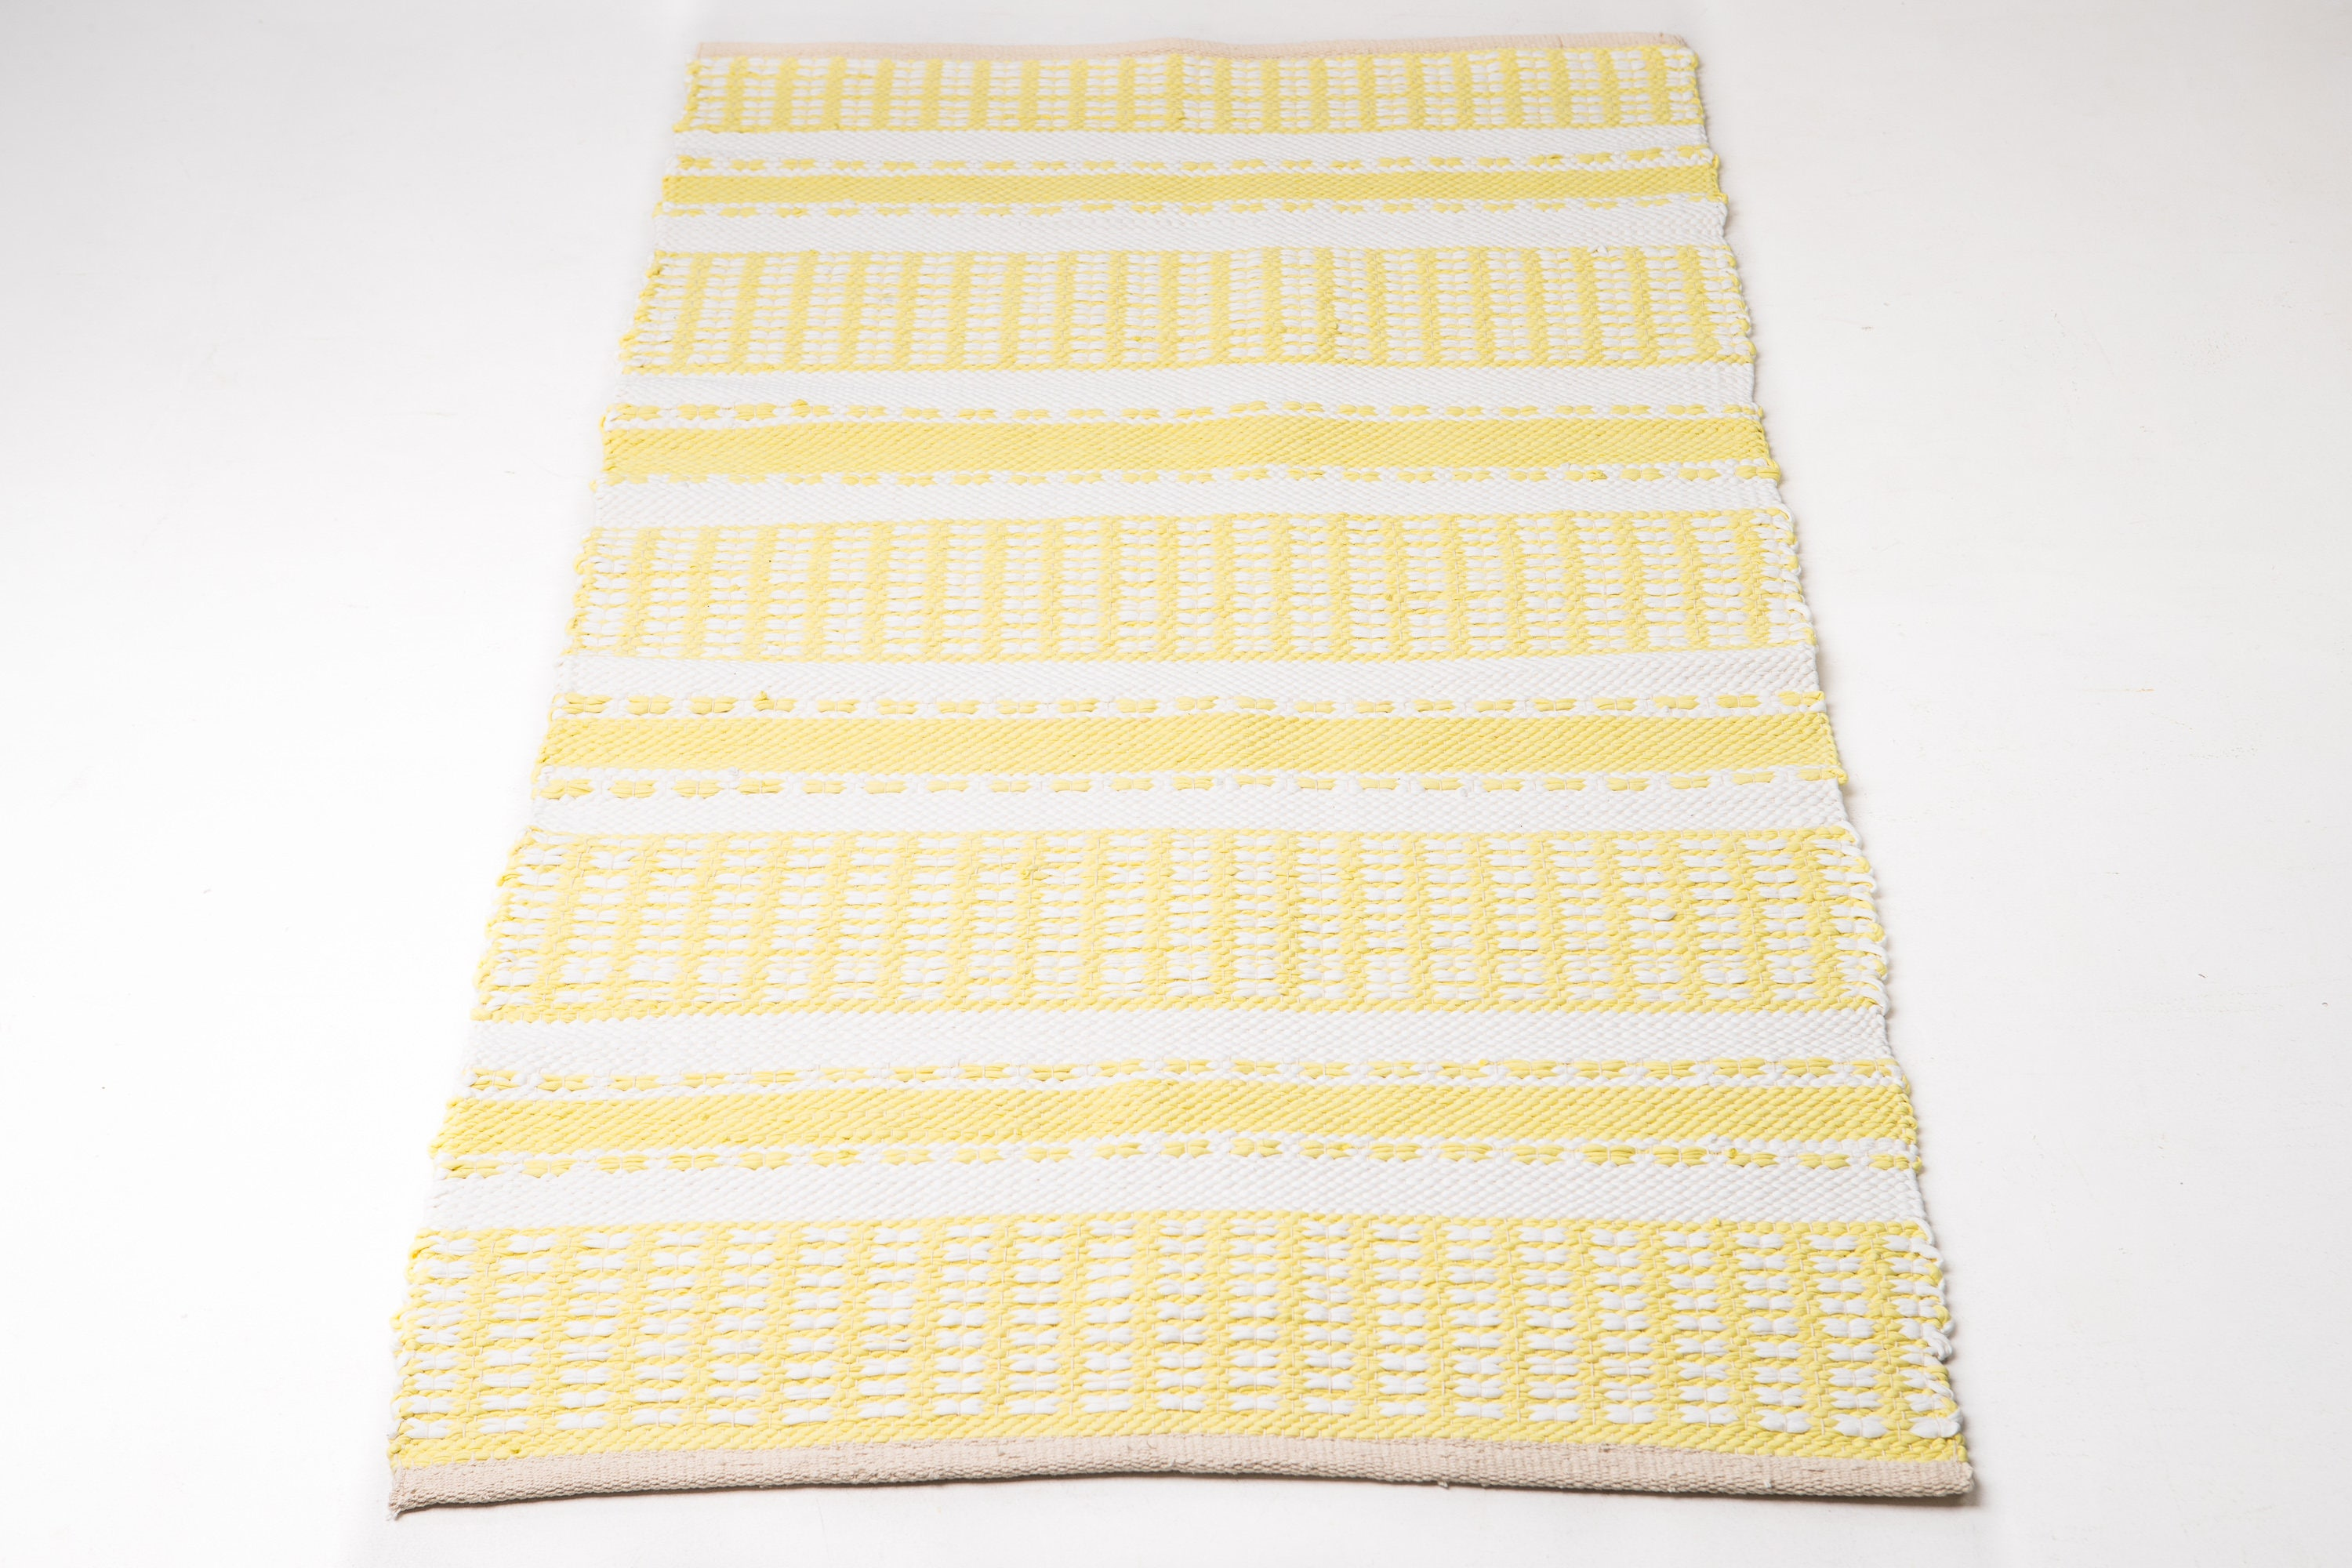 Lemon And White Rug Throw Rug Bedroom Small Rug Runner Rug Etsy